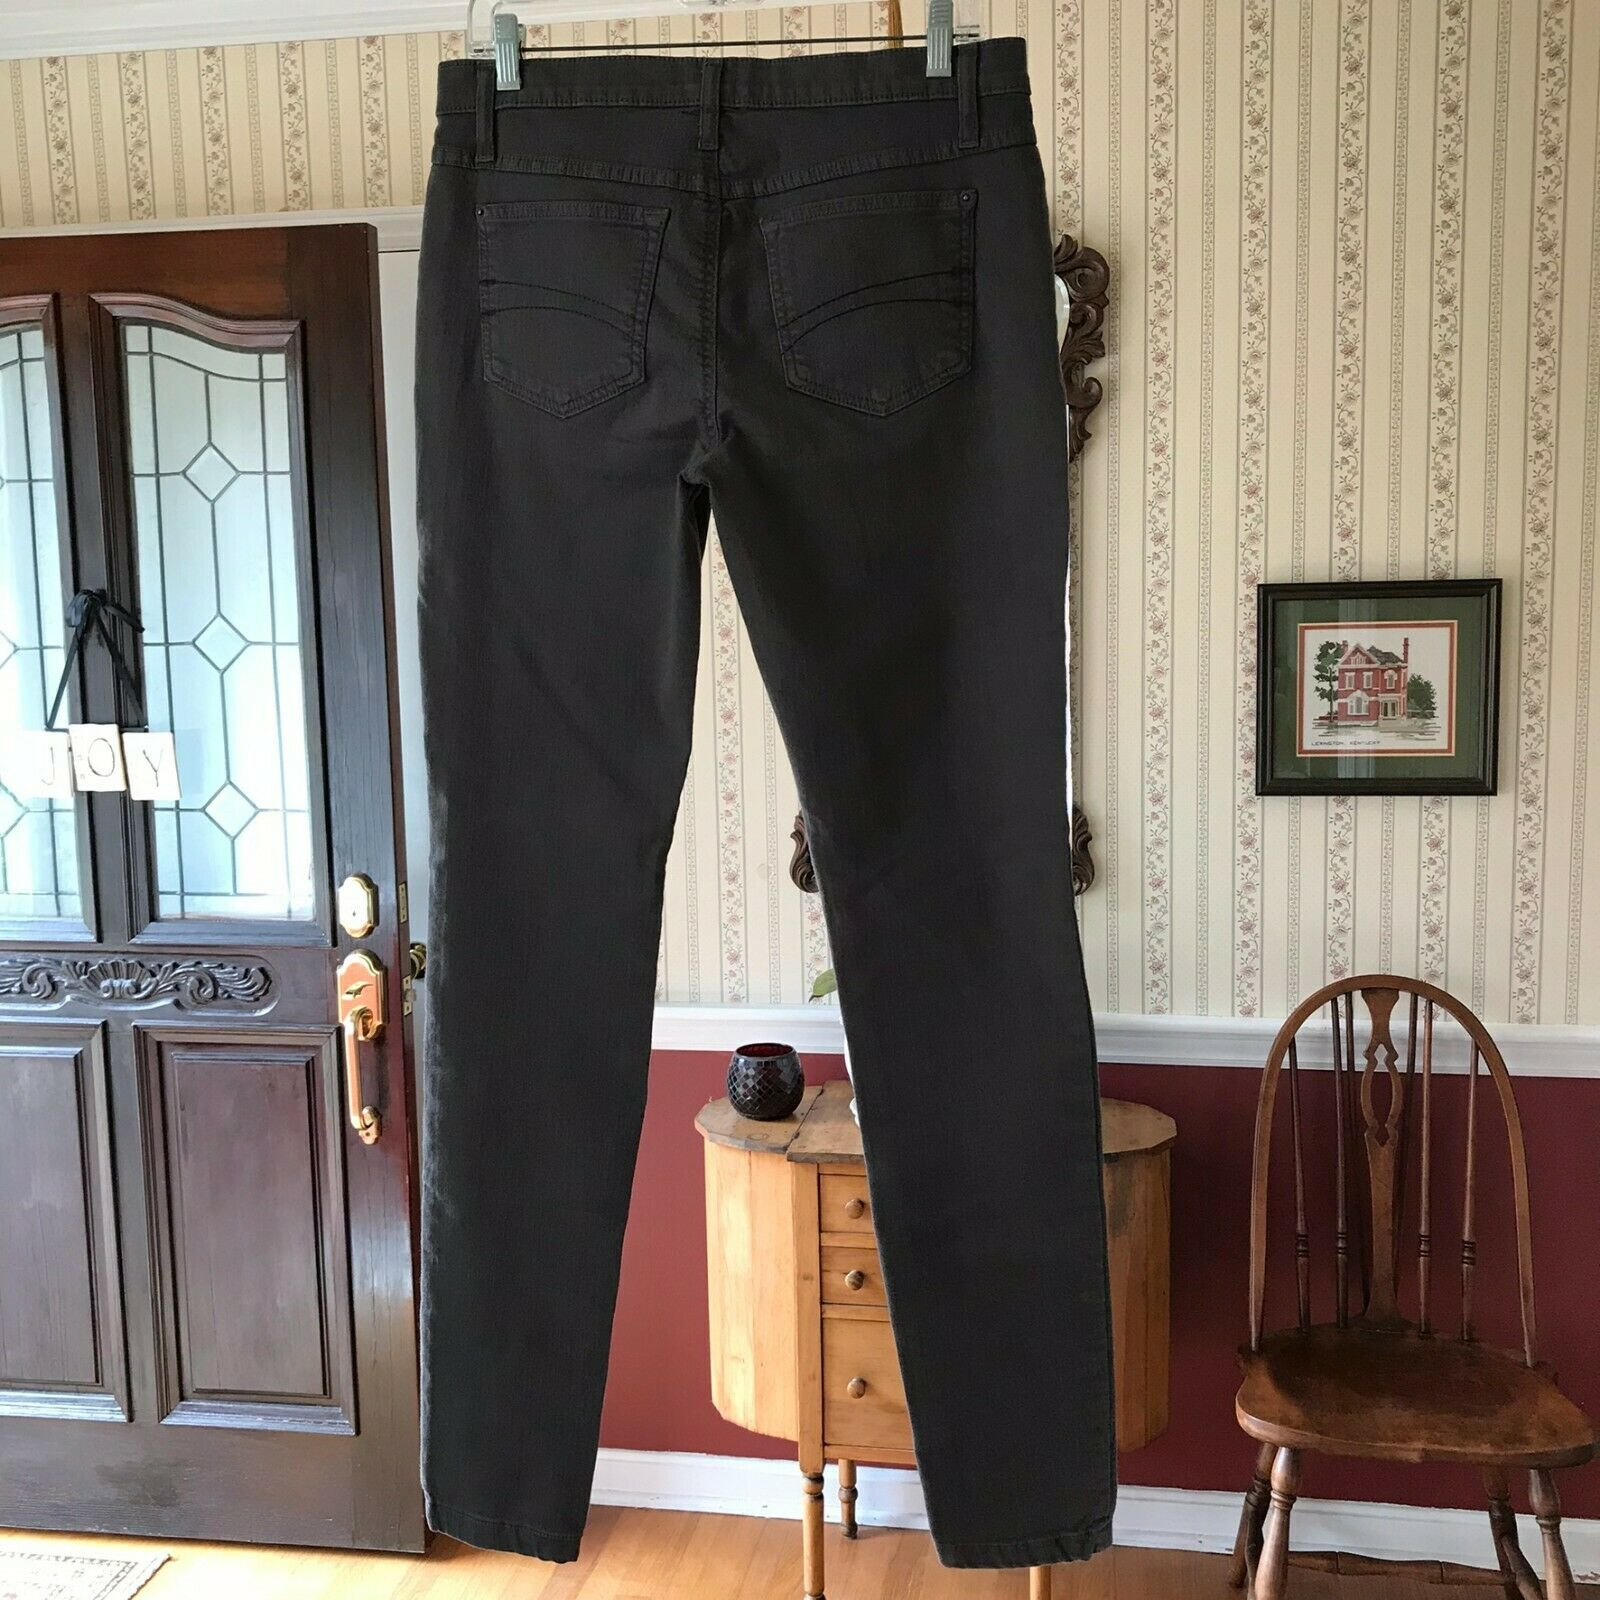 Second Yoga Jeans Brown Skinny Stretch Pants Size 30